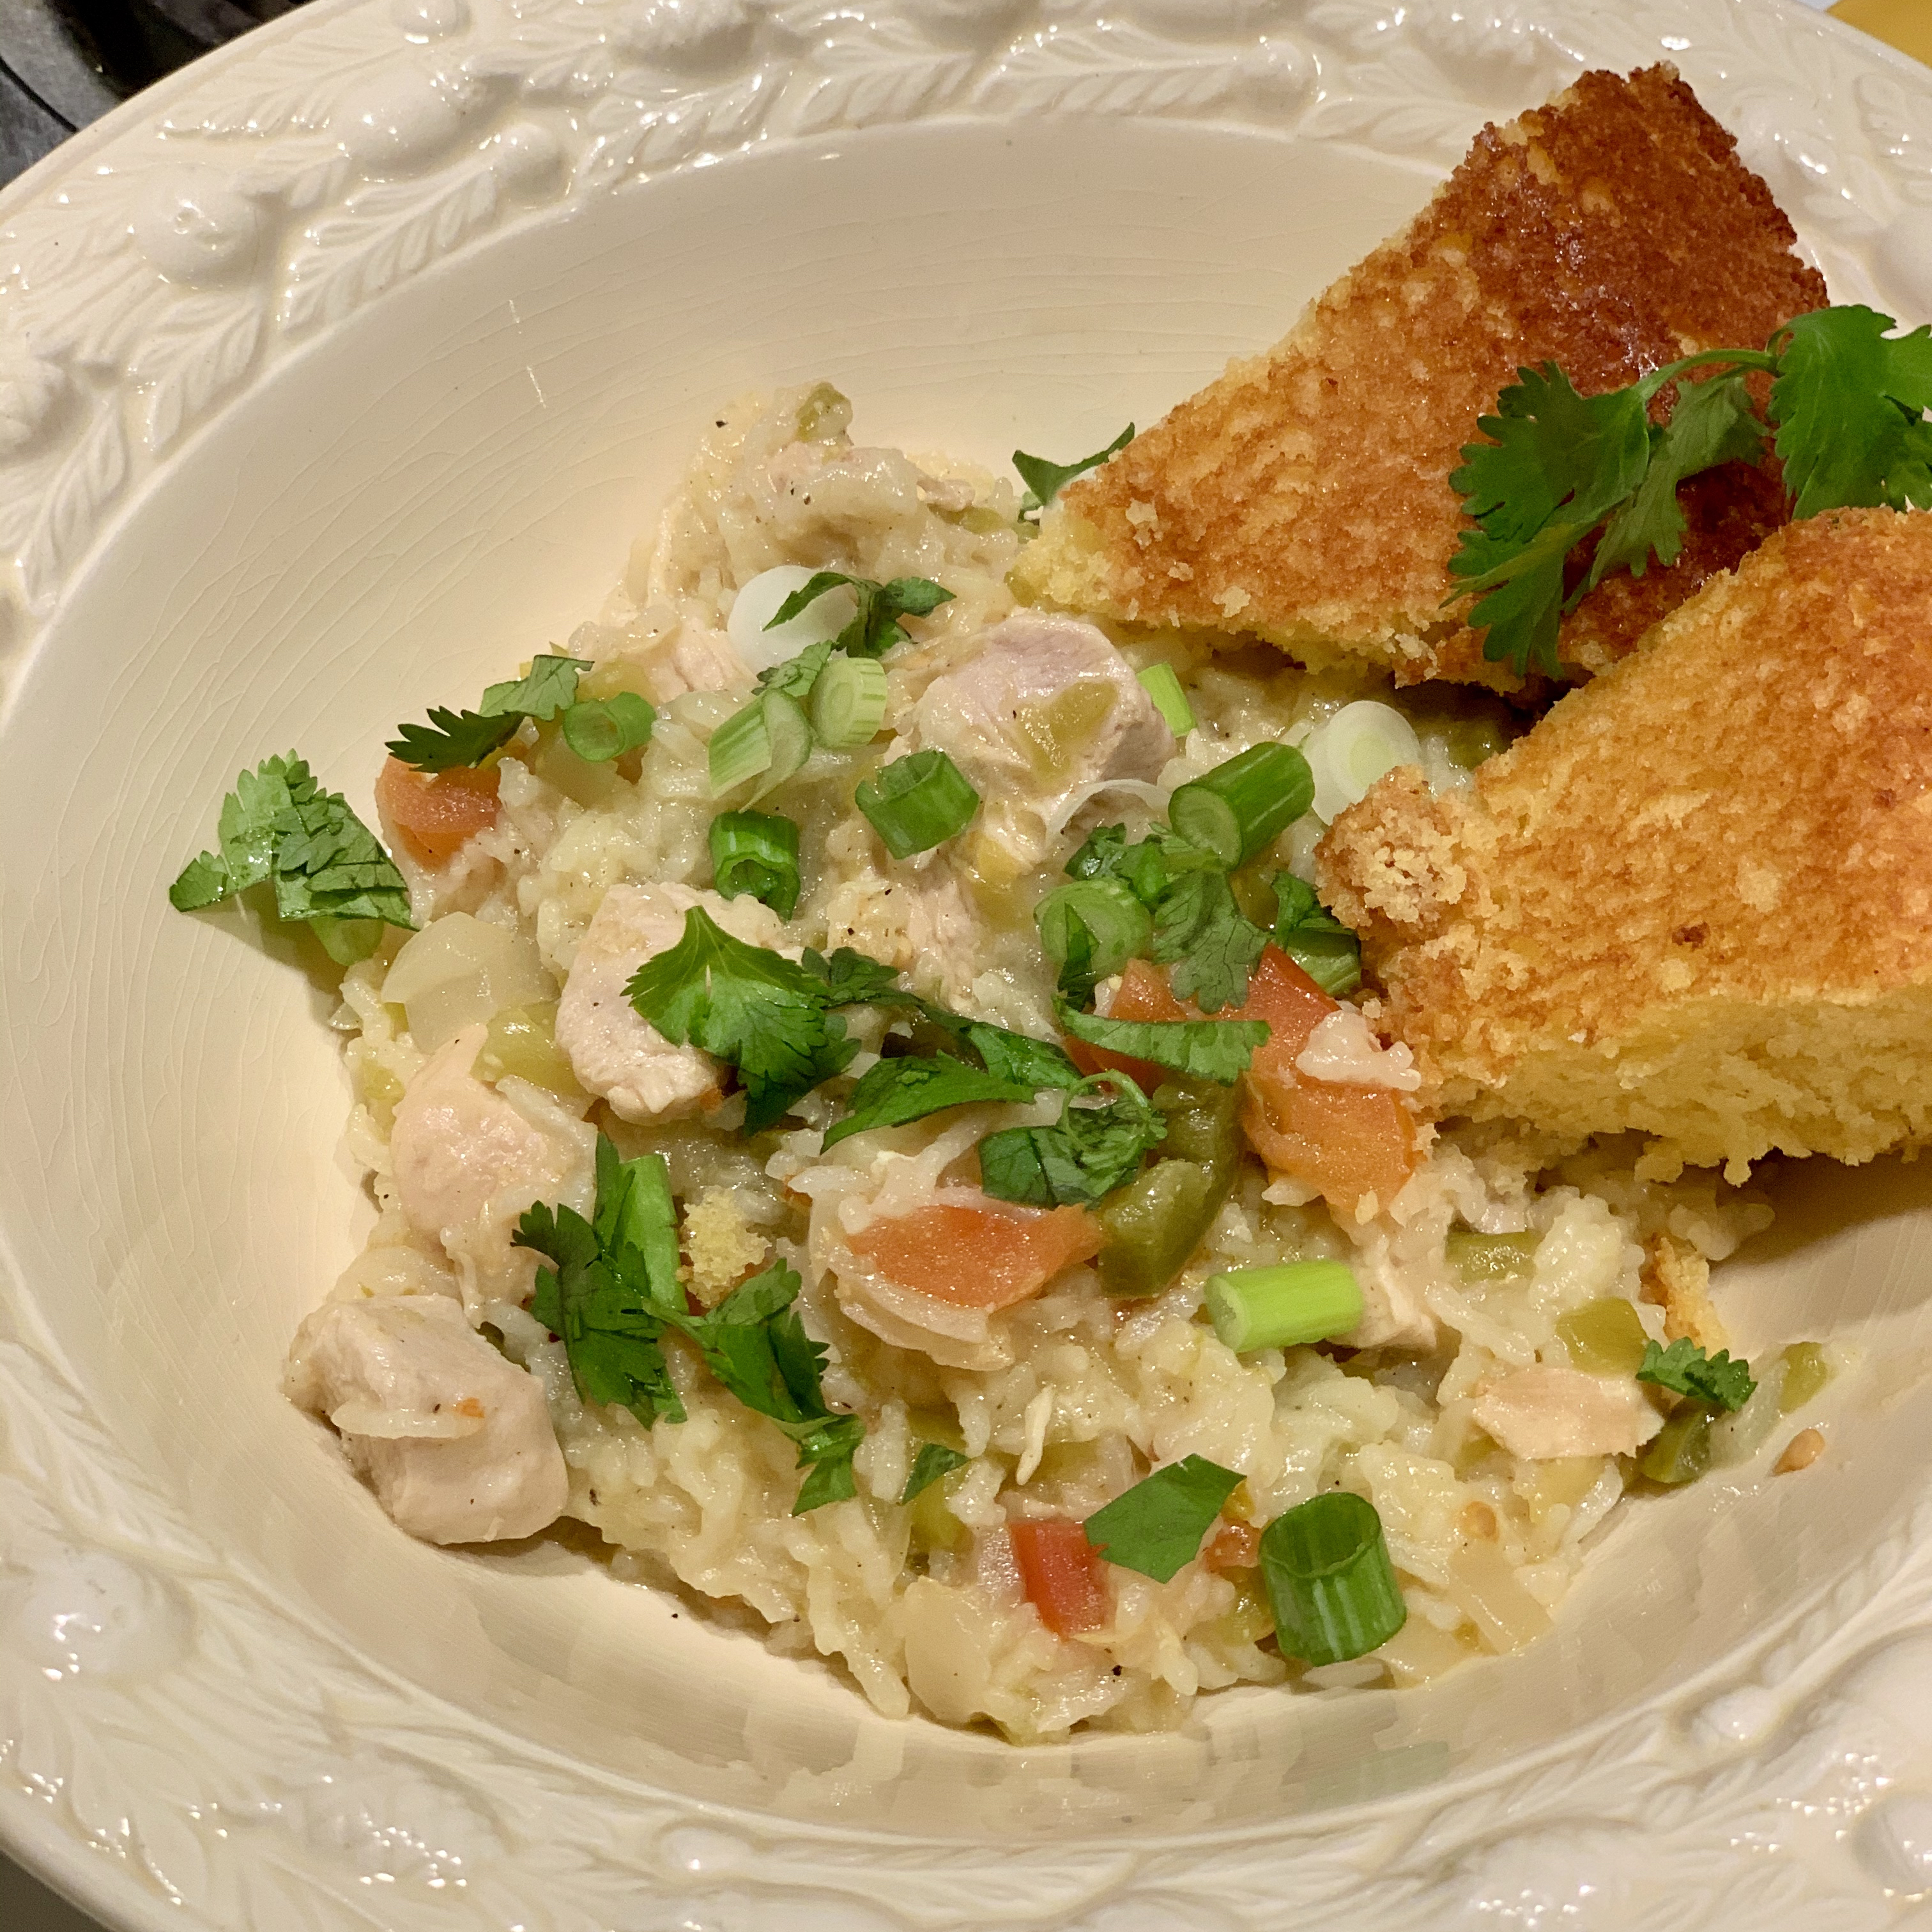 Instant Pot® Green Chili Chicken and Rice Sheryle D. Wells